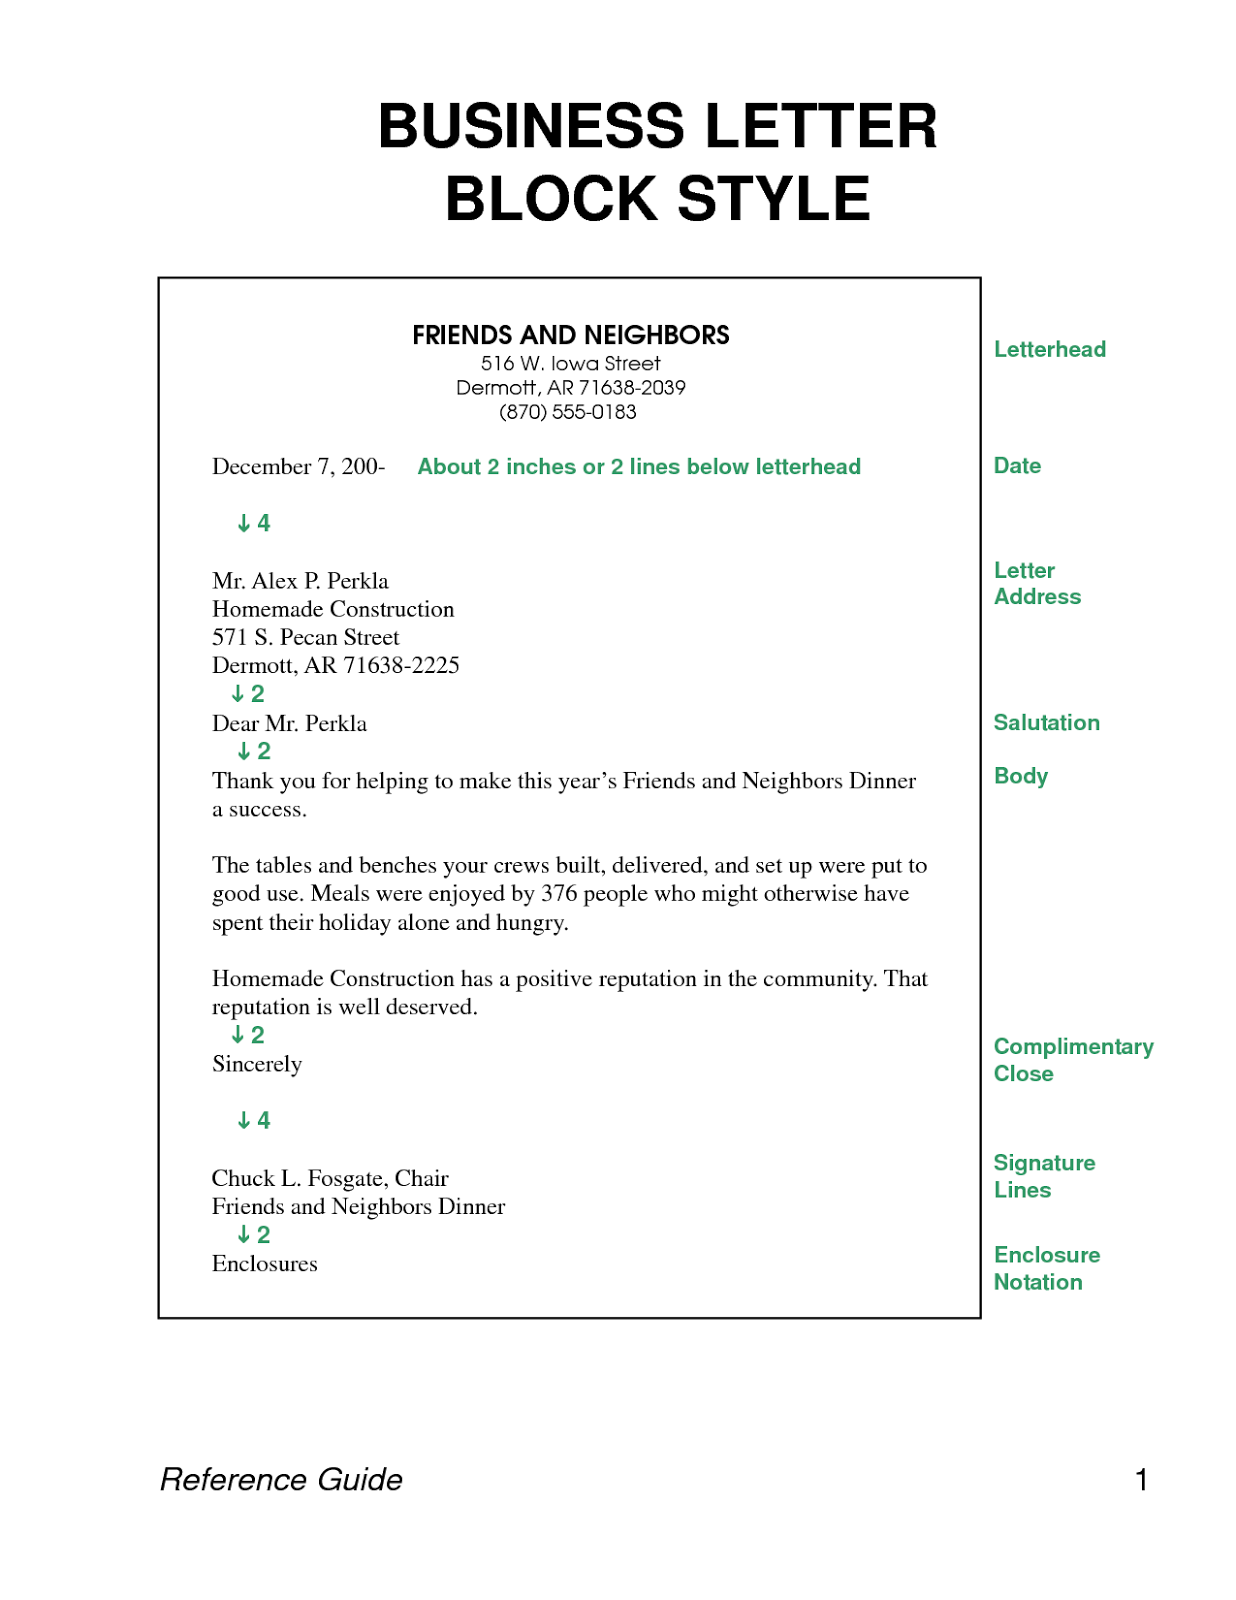 administrative assistant cover letter example letters full block style